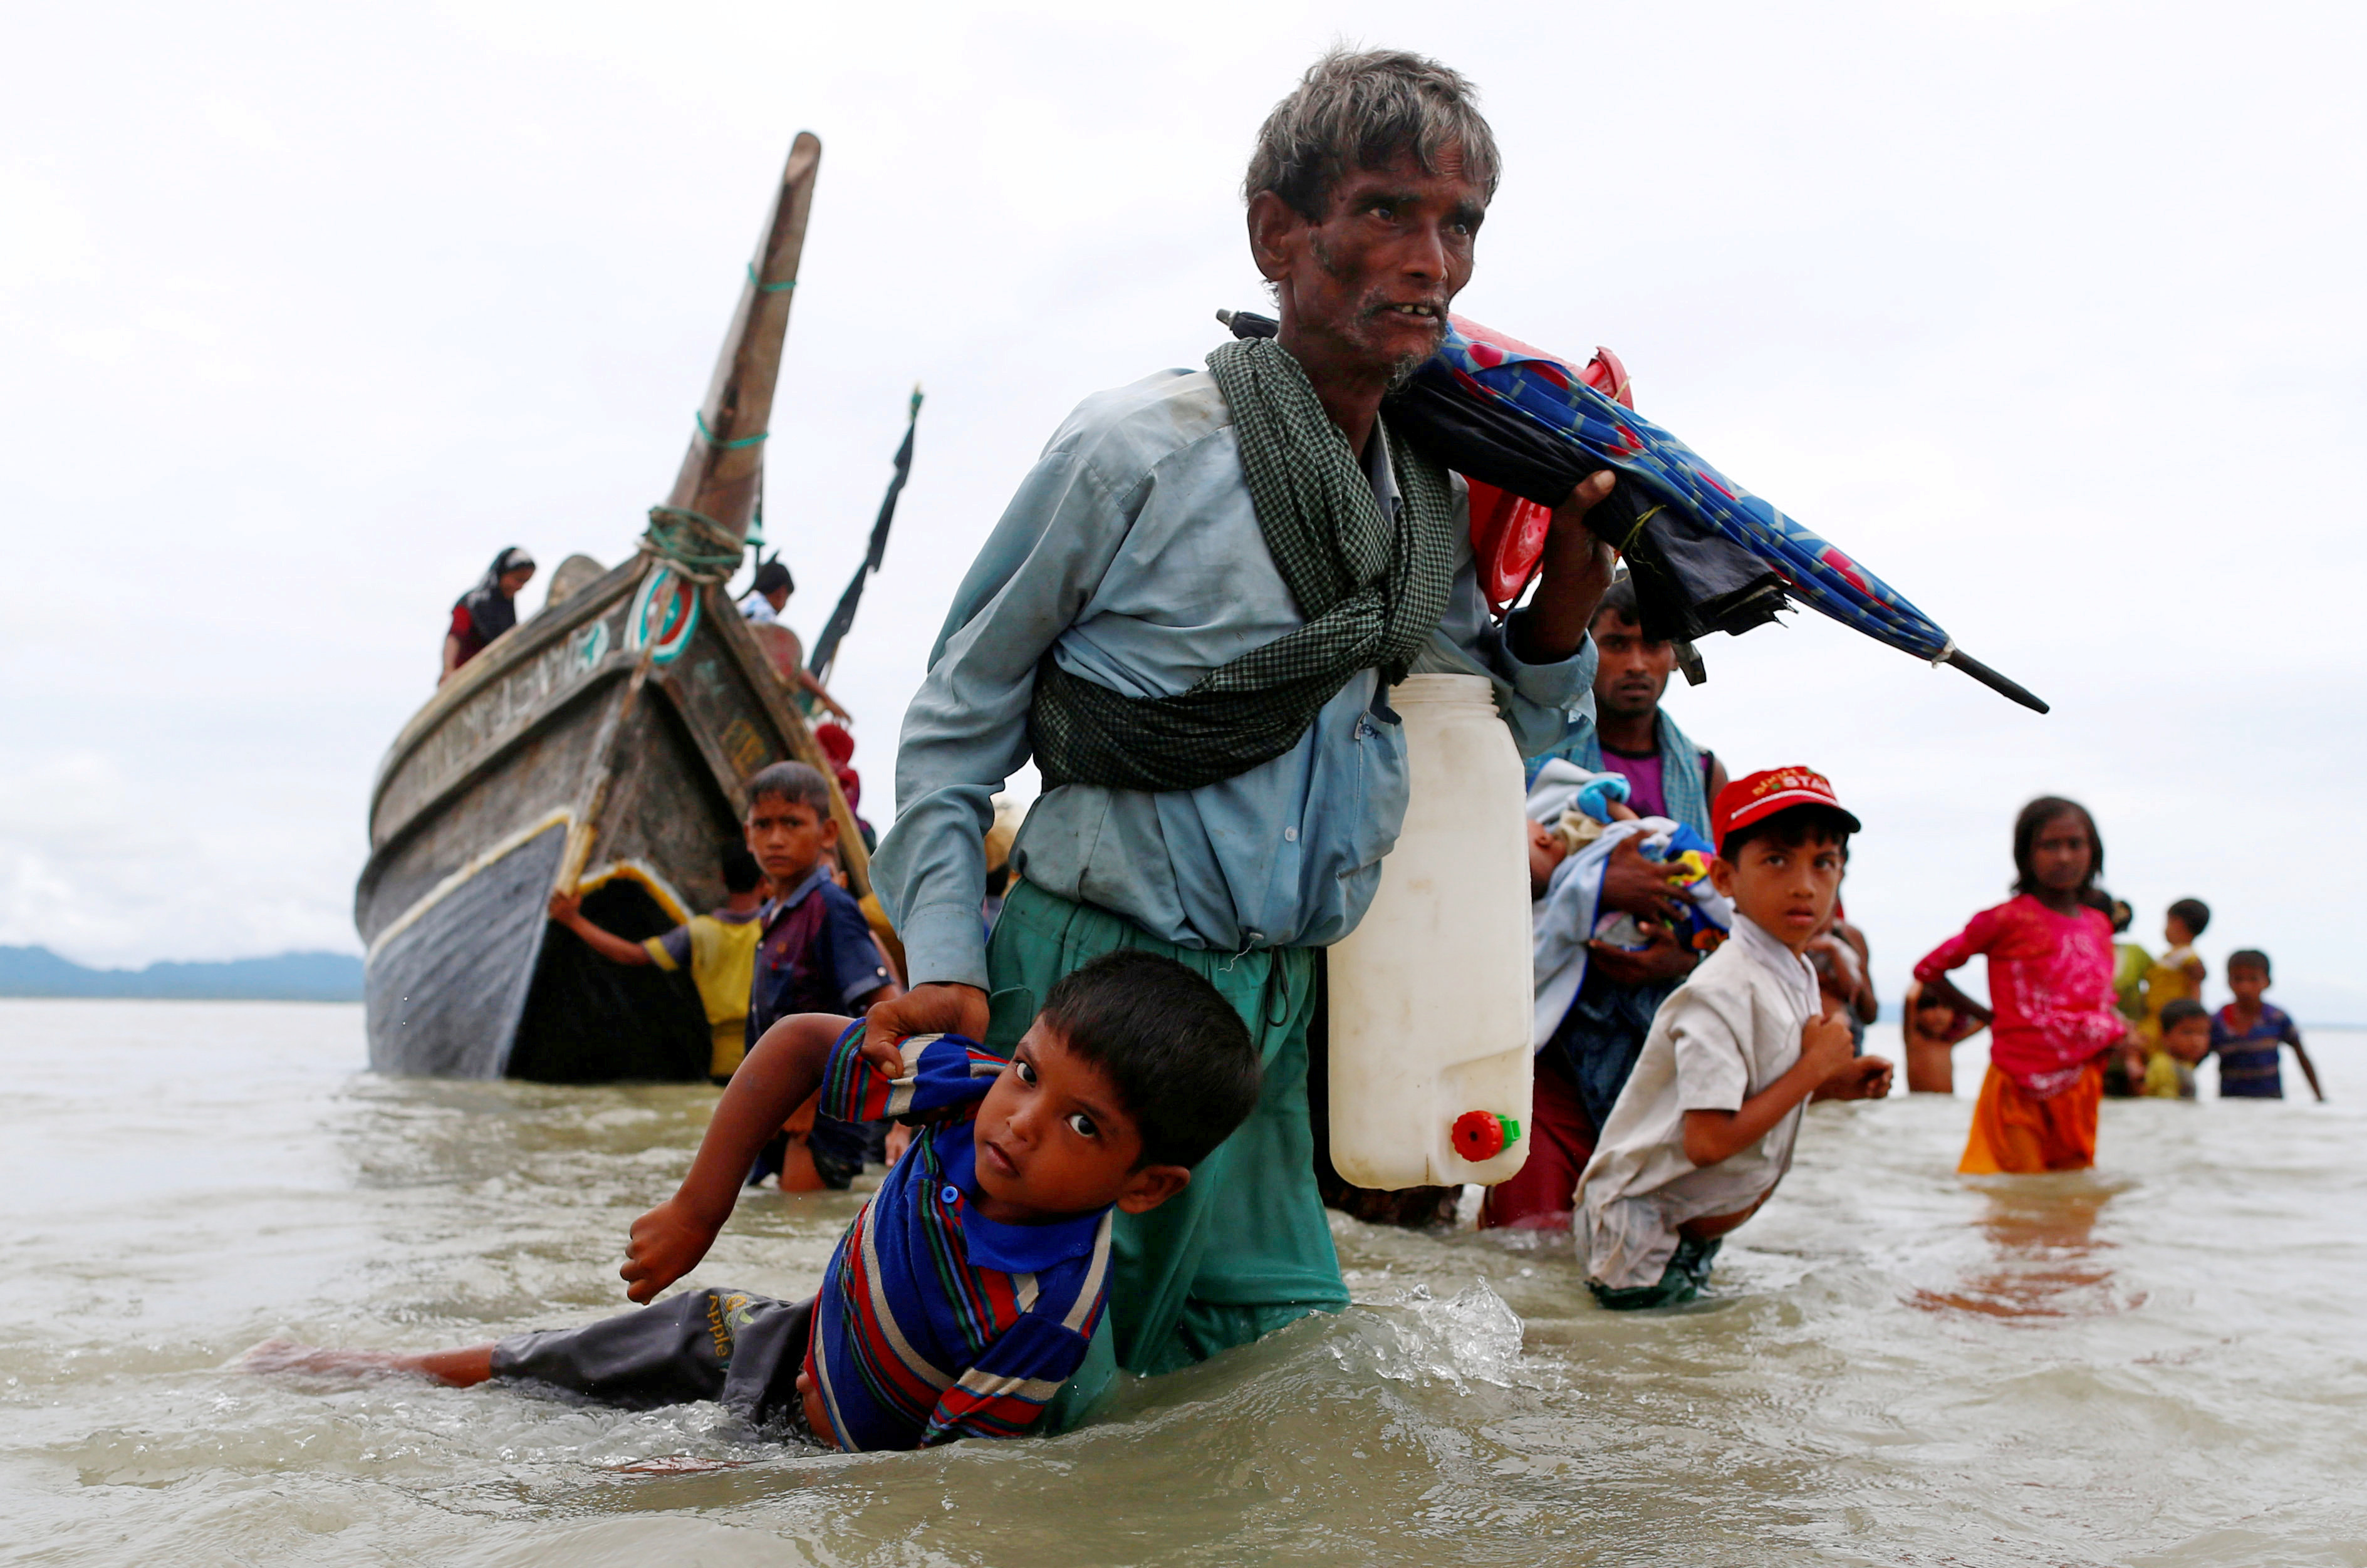 A Rohingya refugee man pulls a child as they walk to the shore after crossing the Bangladesh-Myanmar border by boat through the Bay of Bengal in Shah Porir Dwip, Bangladesh, September 10, 2017. REUTERS/Danish Siddiqui